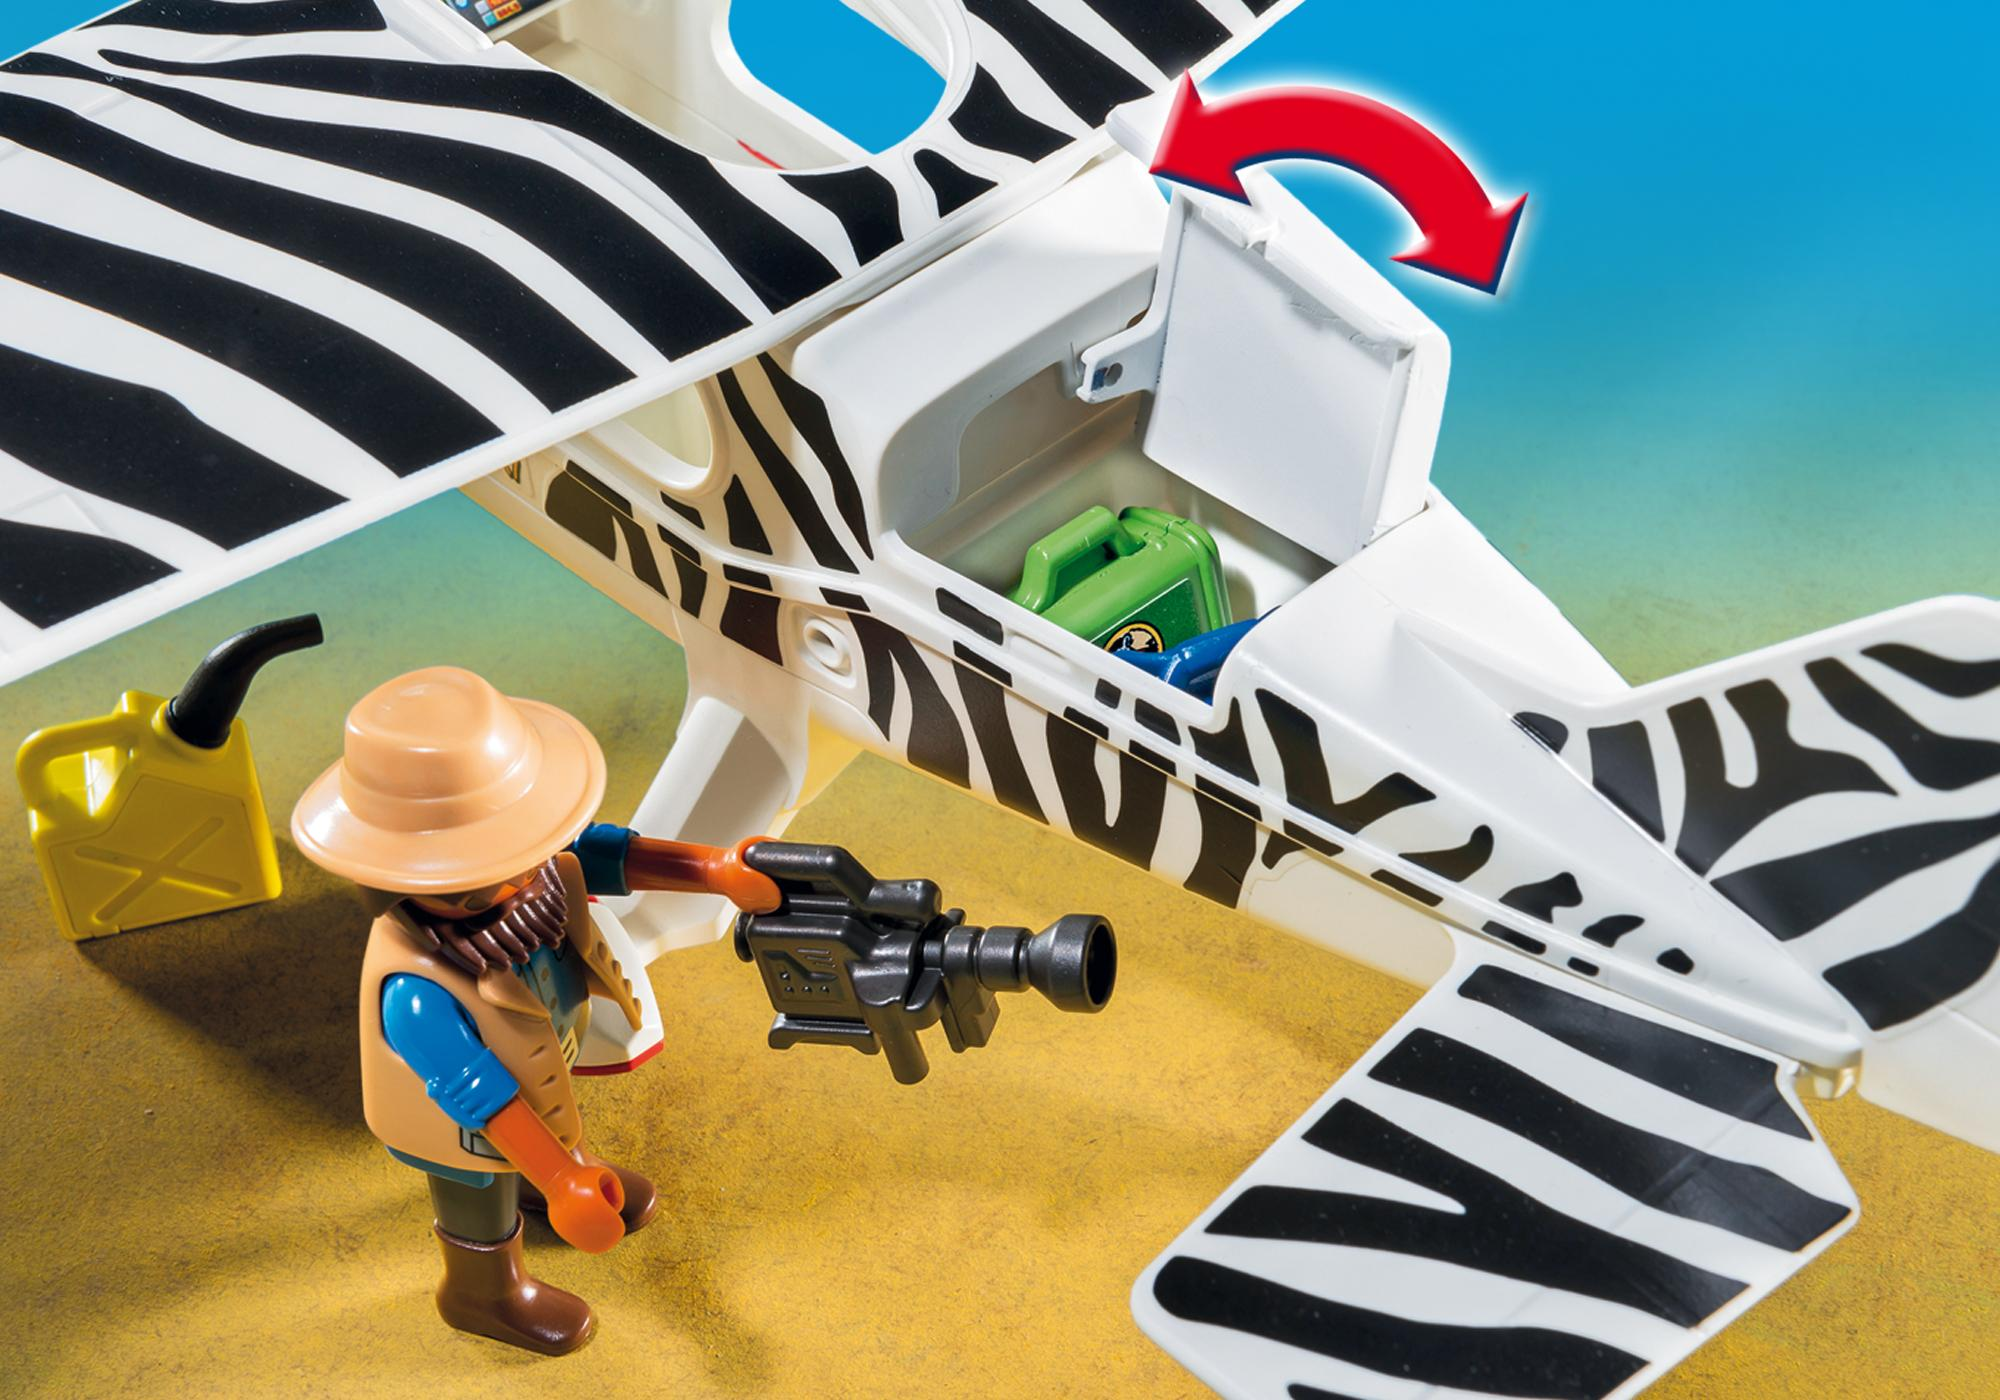 http://media.playmobil.com/i/playmobil/6938_product_extra1/Safari Plane